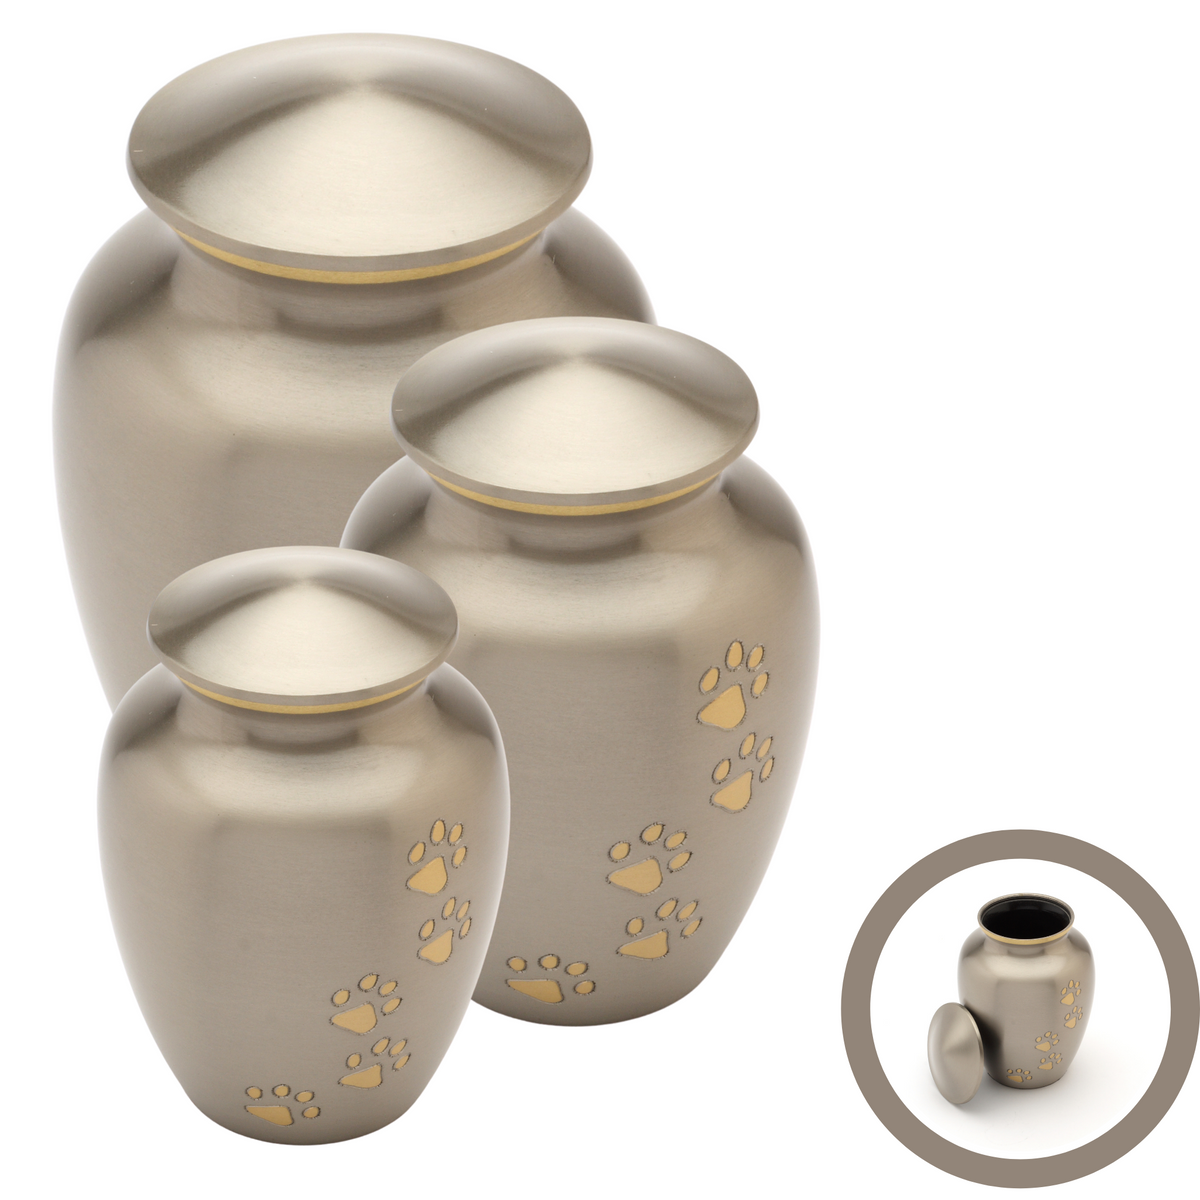 Matlock Pewter Cremation Ashes Pet Urn Range - Urns UK